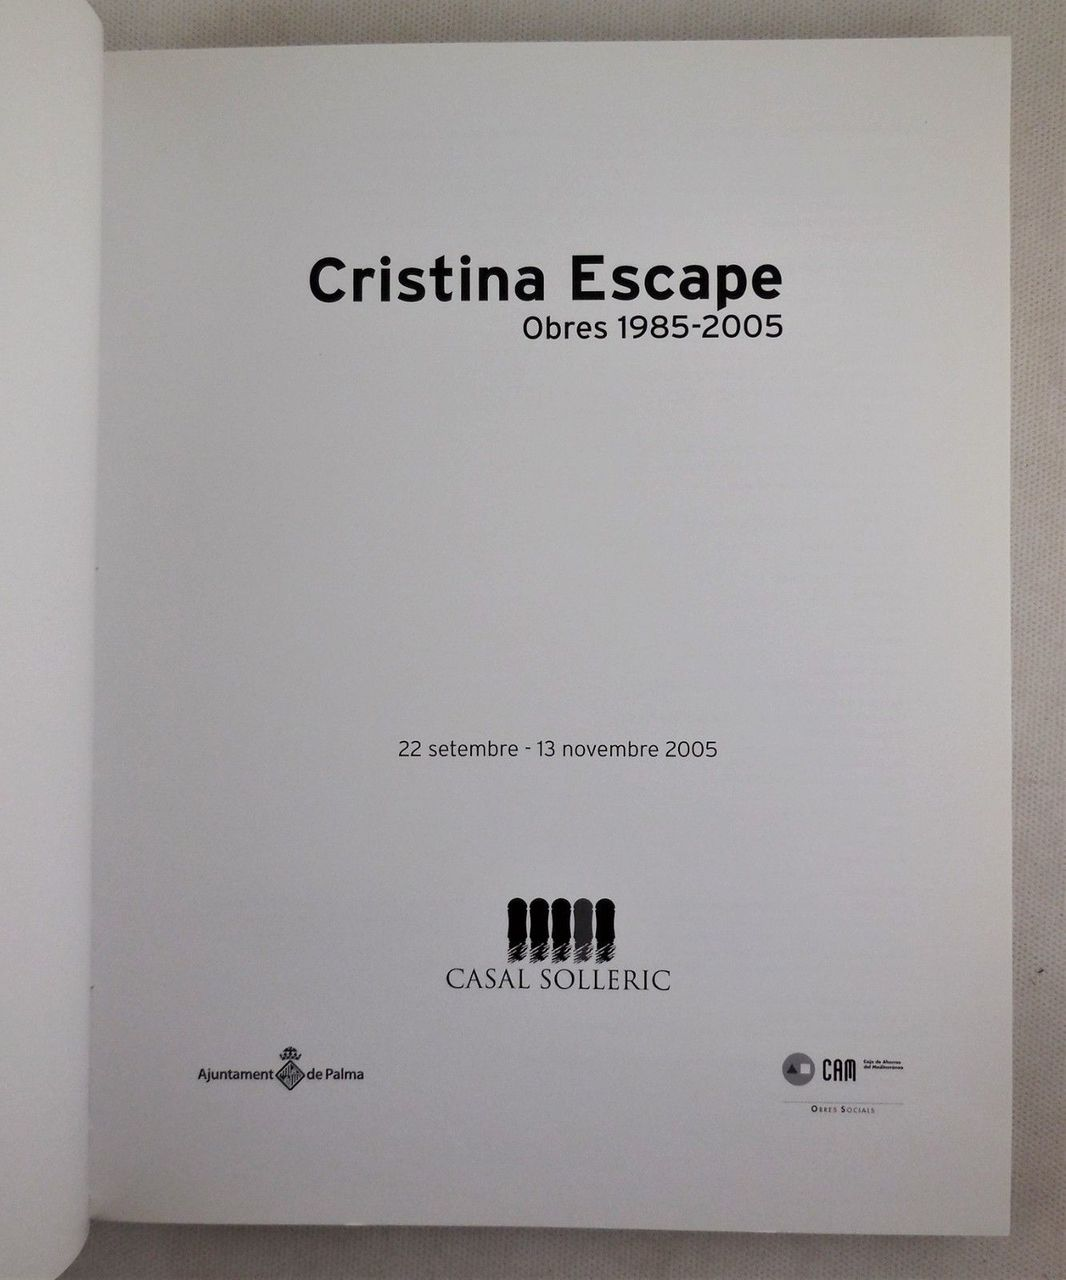 CRISTINA ESCAPE: OBRES 1985-2005, at Casal Solleric - 2005 [1st Ed]